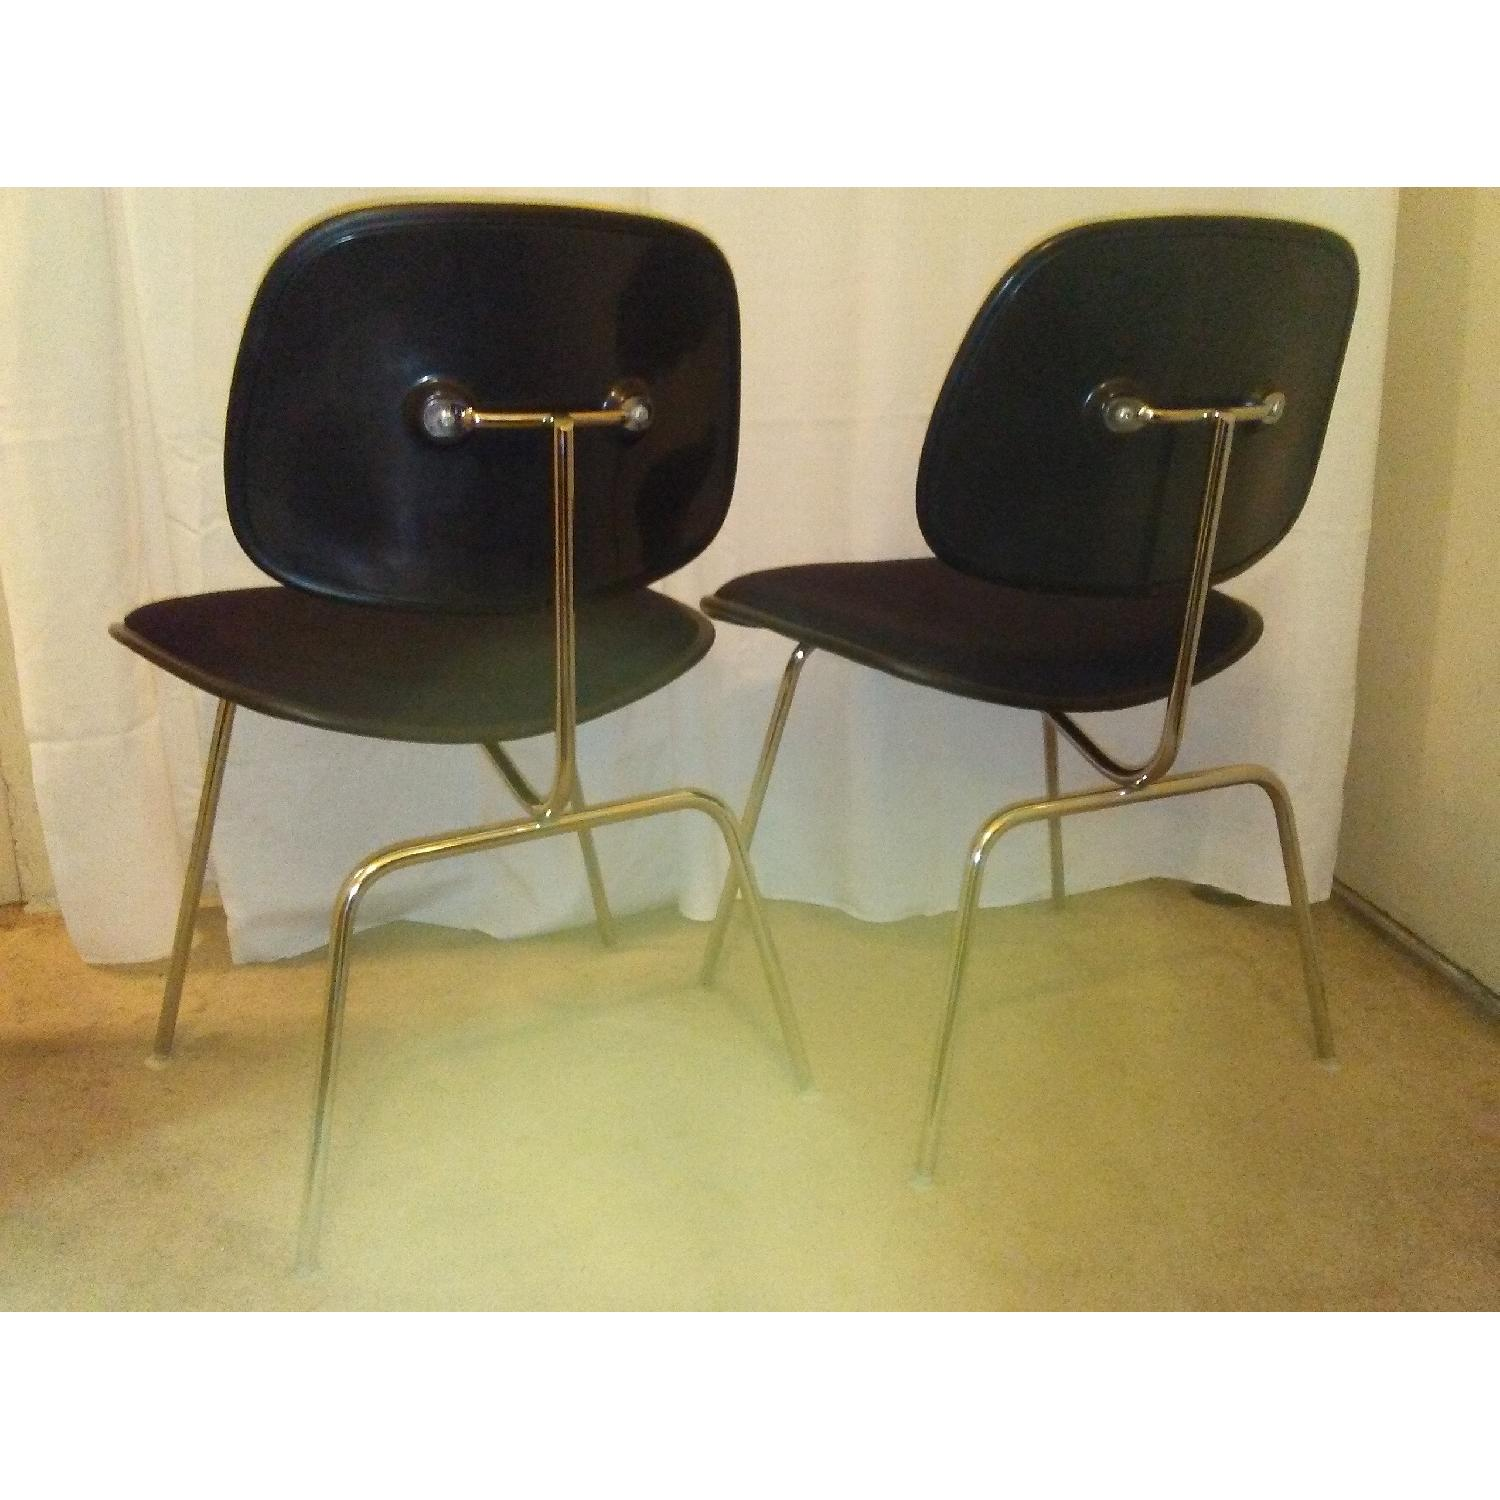 Herman Miller c.1992 Charles Eames Dining/Accent Chairs - image-7